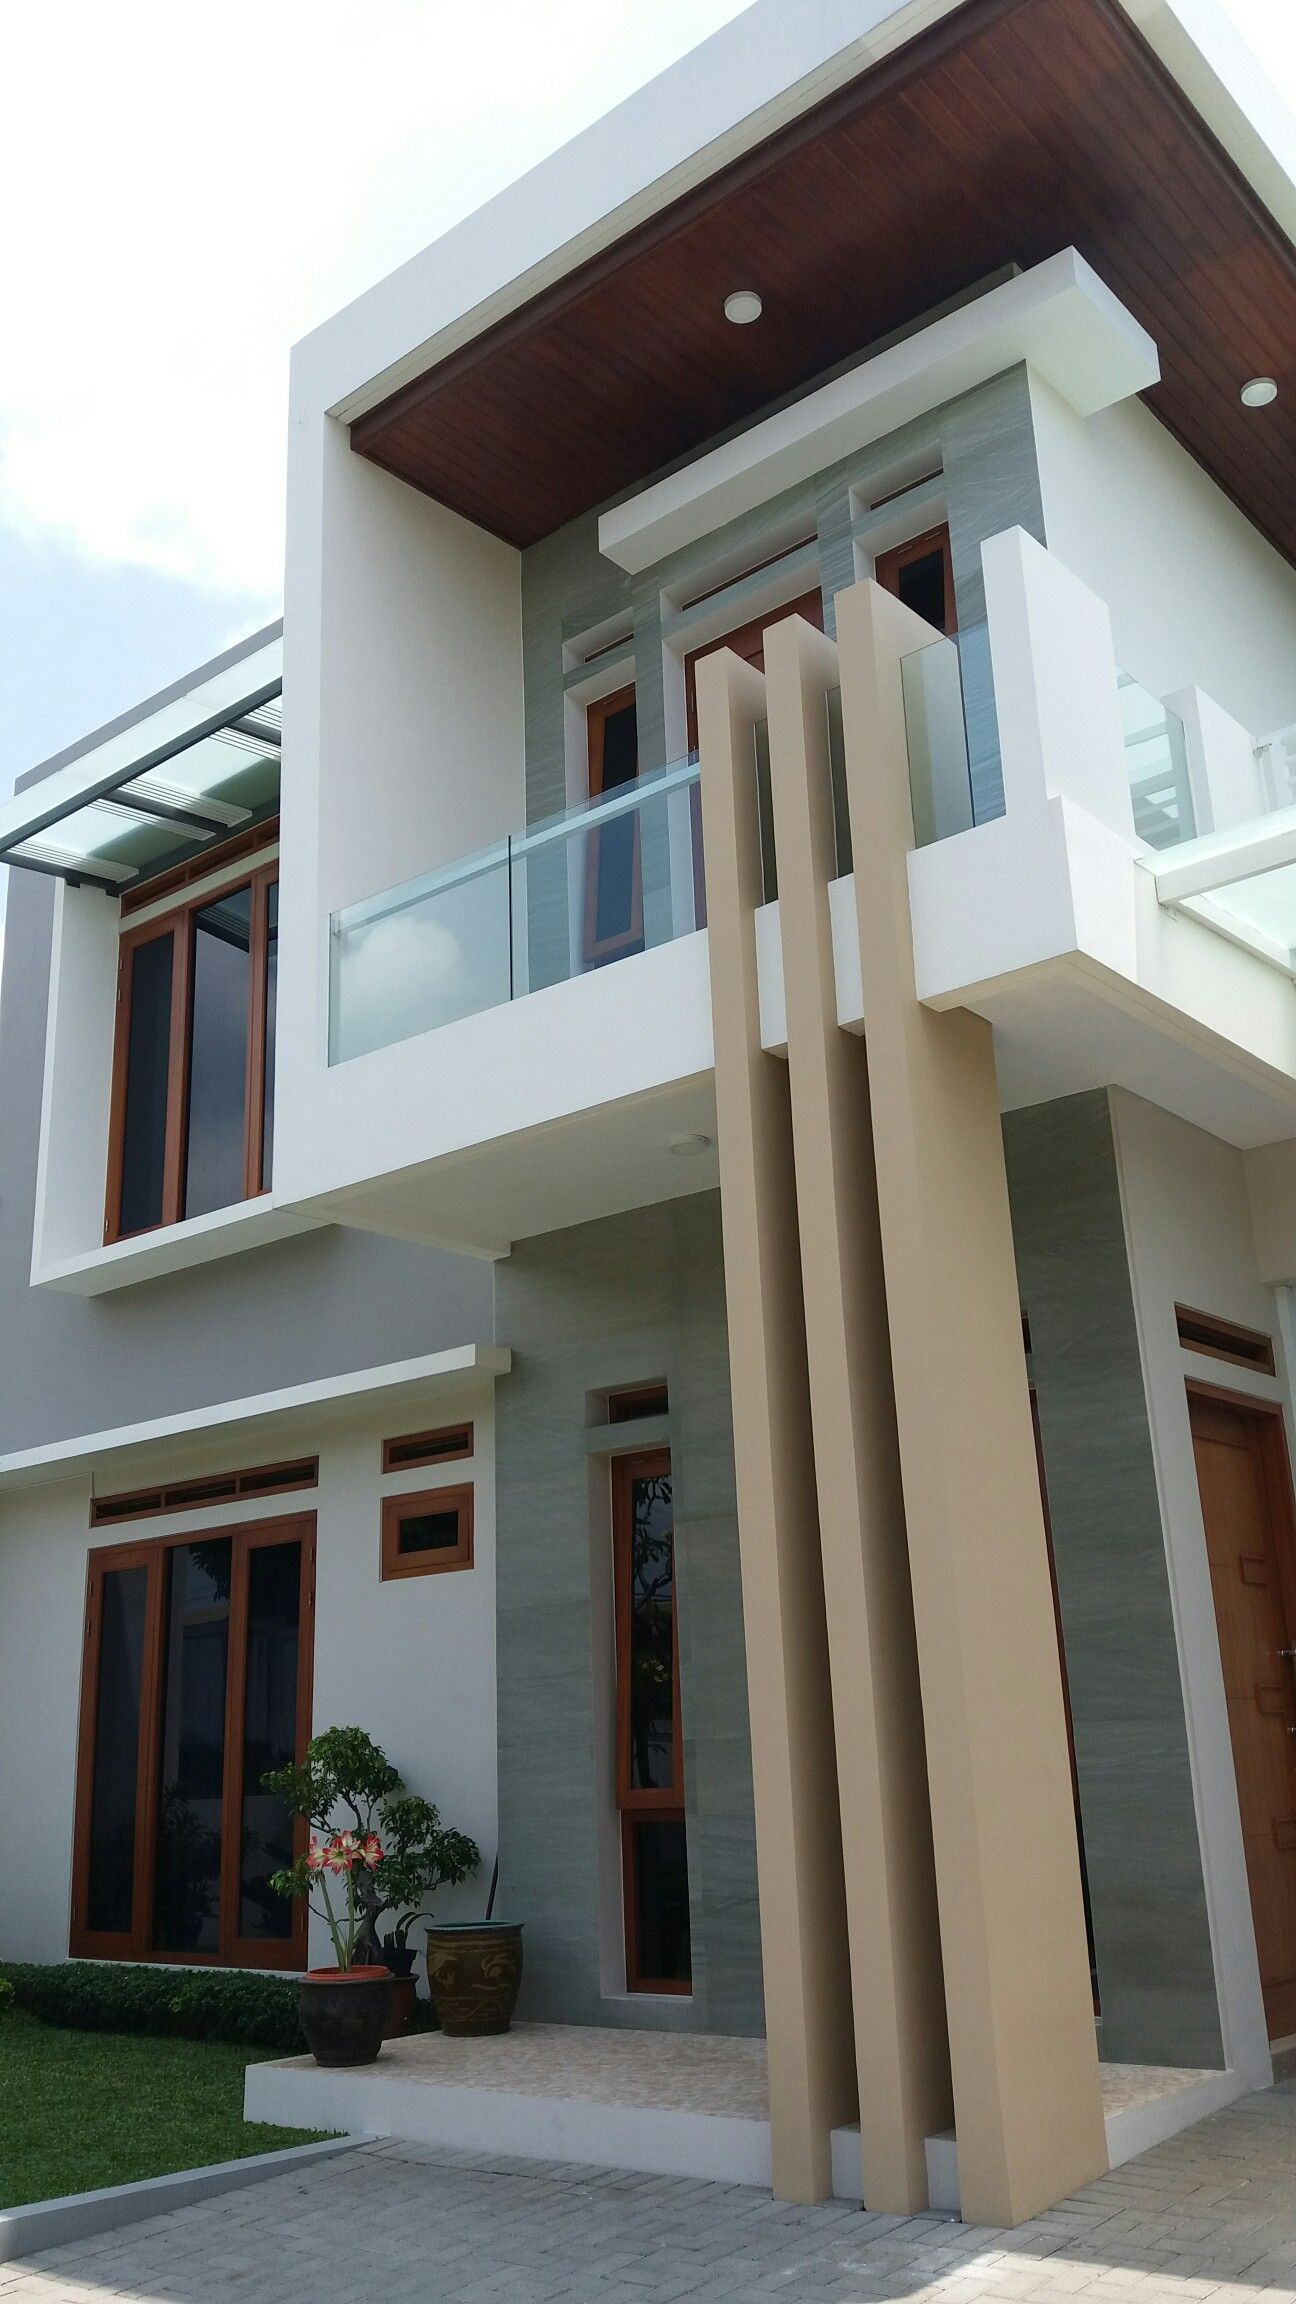 House Front Design House Design Front Elevation Designs: Facade House, House Front Design, Residential Building Design